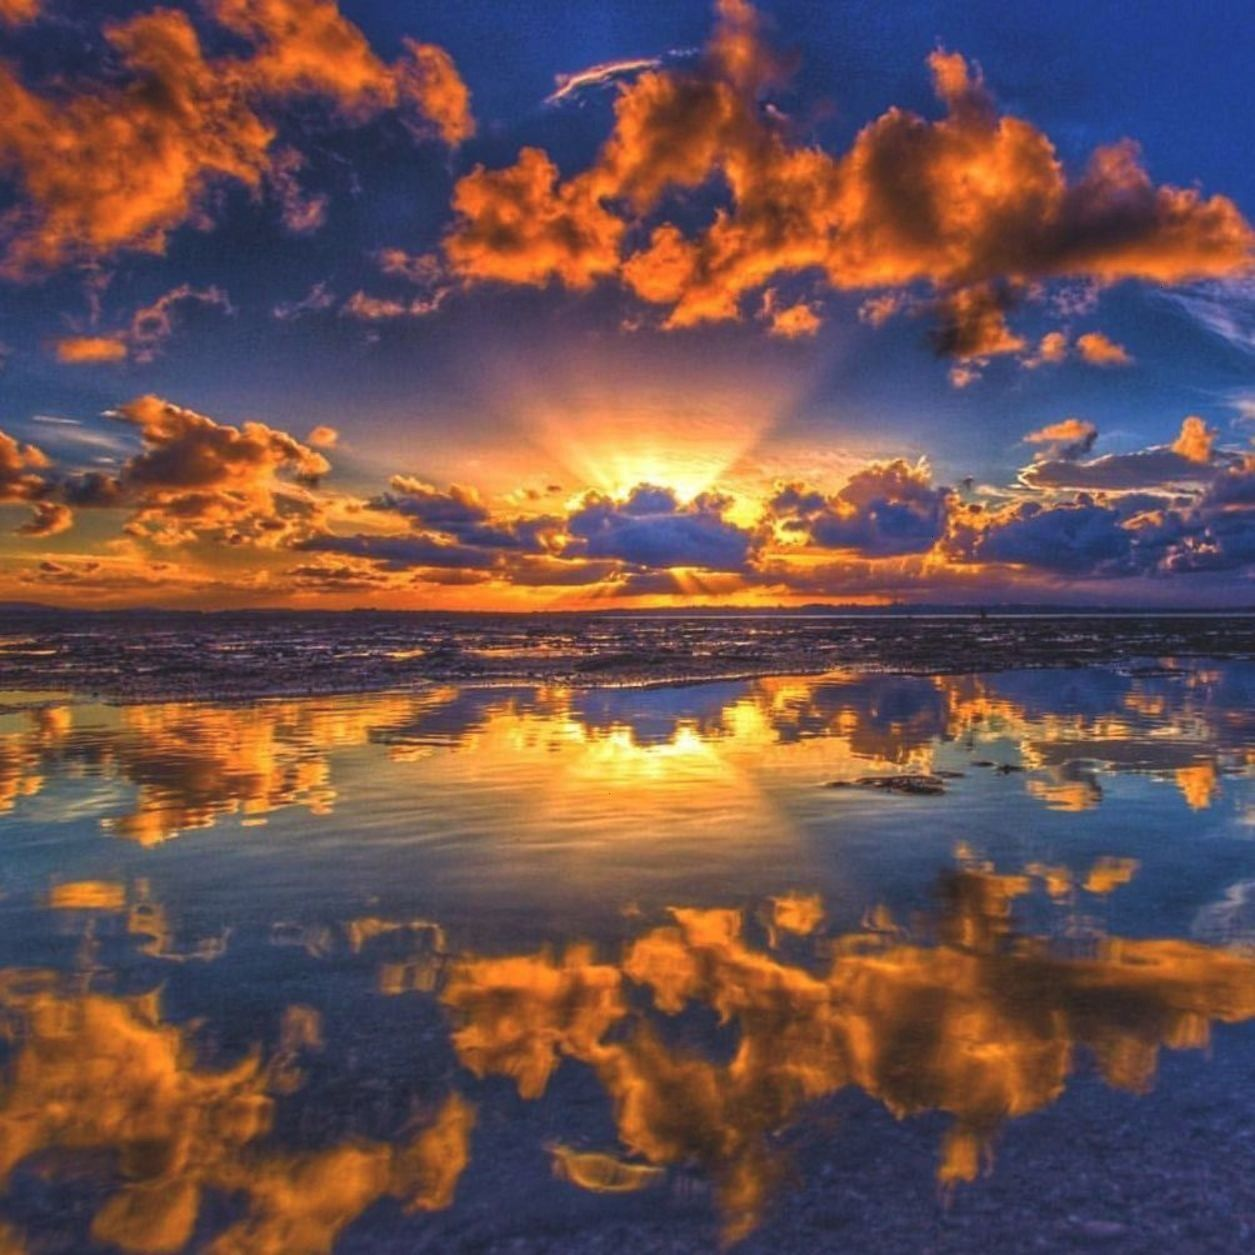 Sunsets and Sunrises from Southeast Queensland by Ben MulderAstonishing Sunsets and Sunrises from S